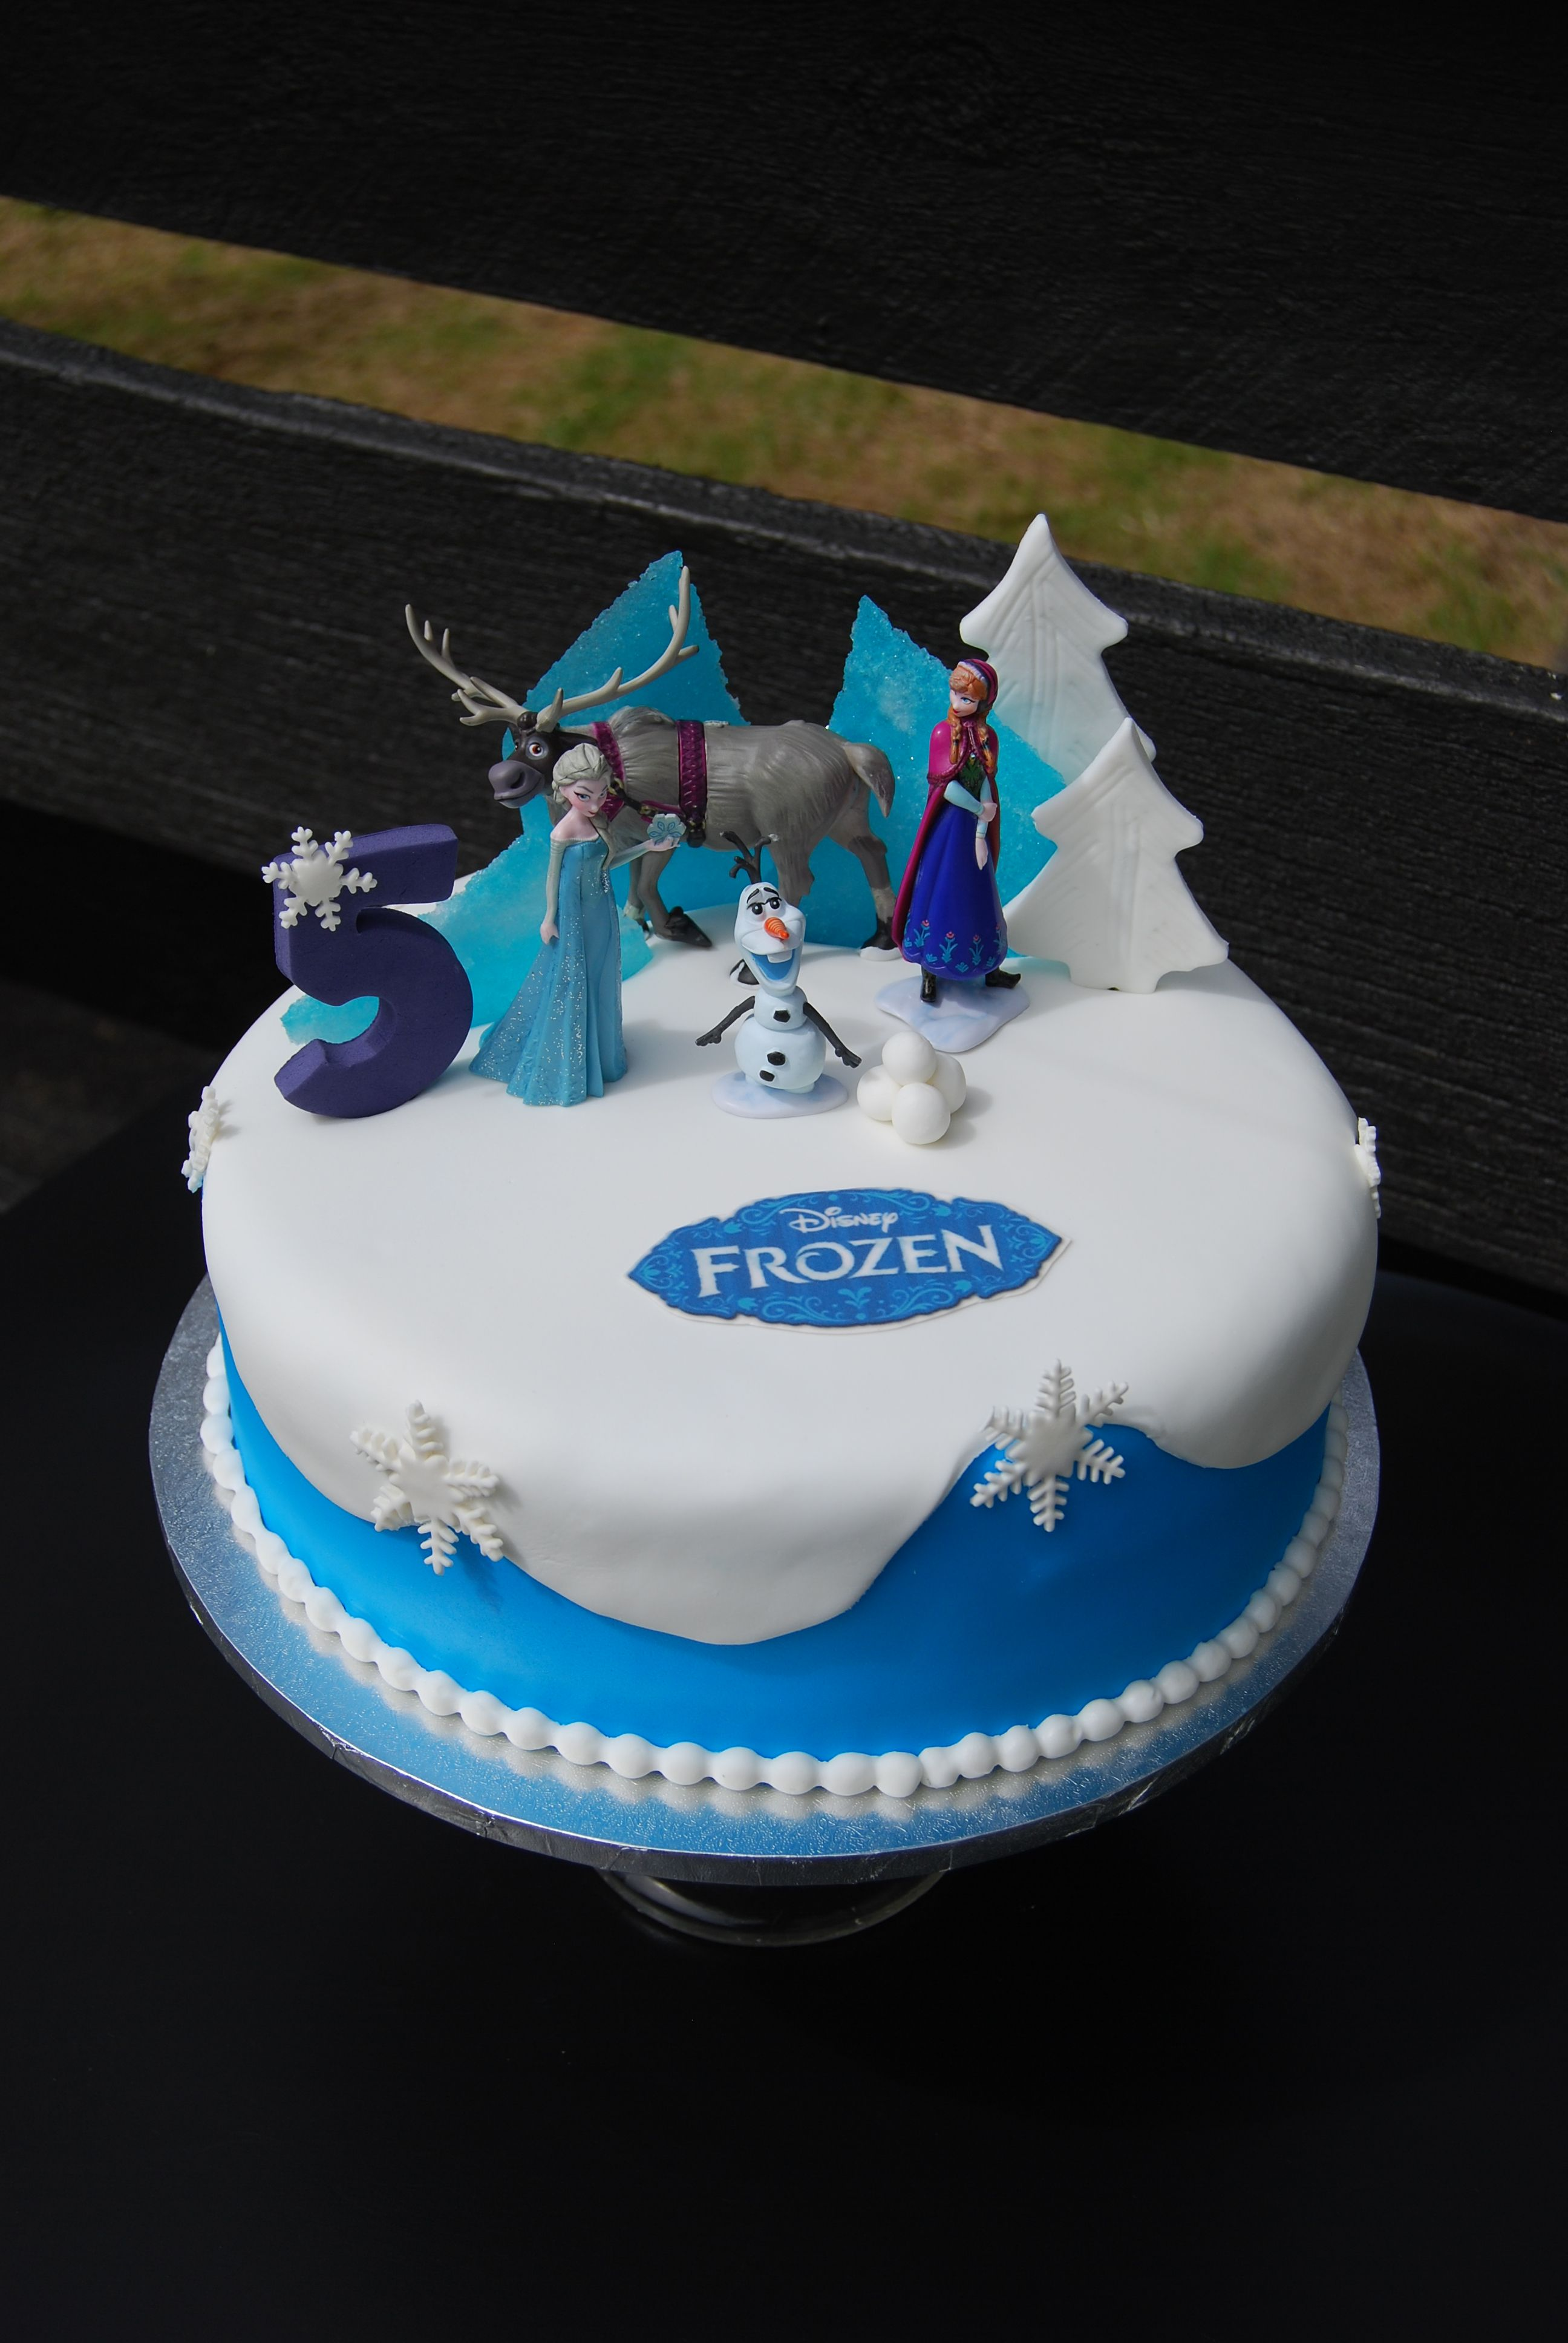 Frozen Cake Auckland 195 Is 10 Inch FREE Delivery Non Rural Figurines Bought From A Licensed Retailer